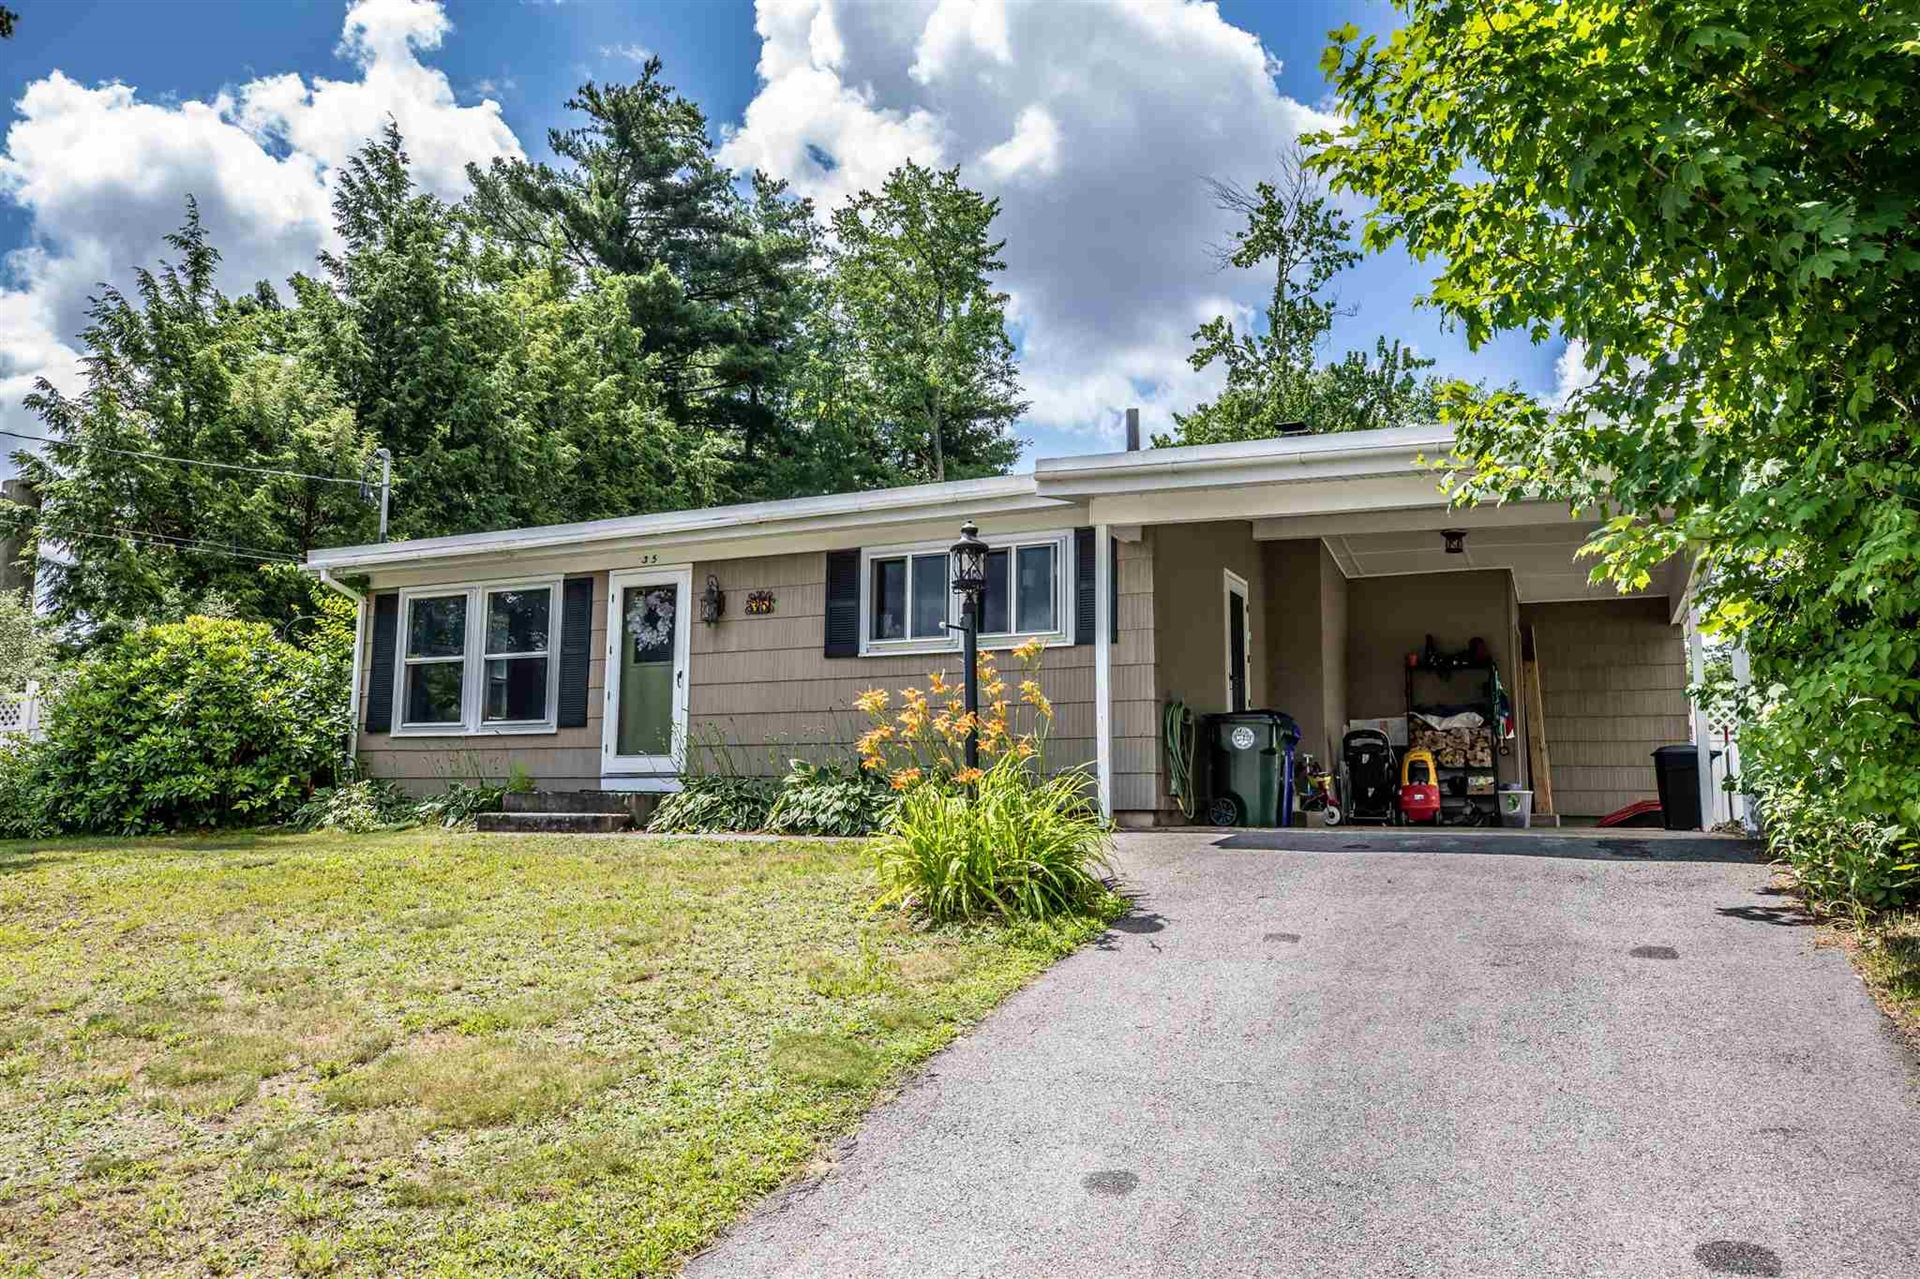 35 Roycraft Road, Manchester, NH 03103 - #: 4815078